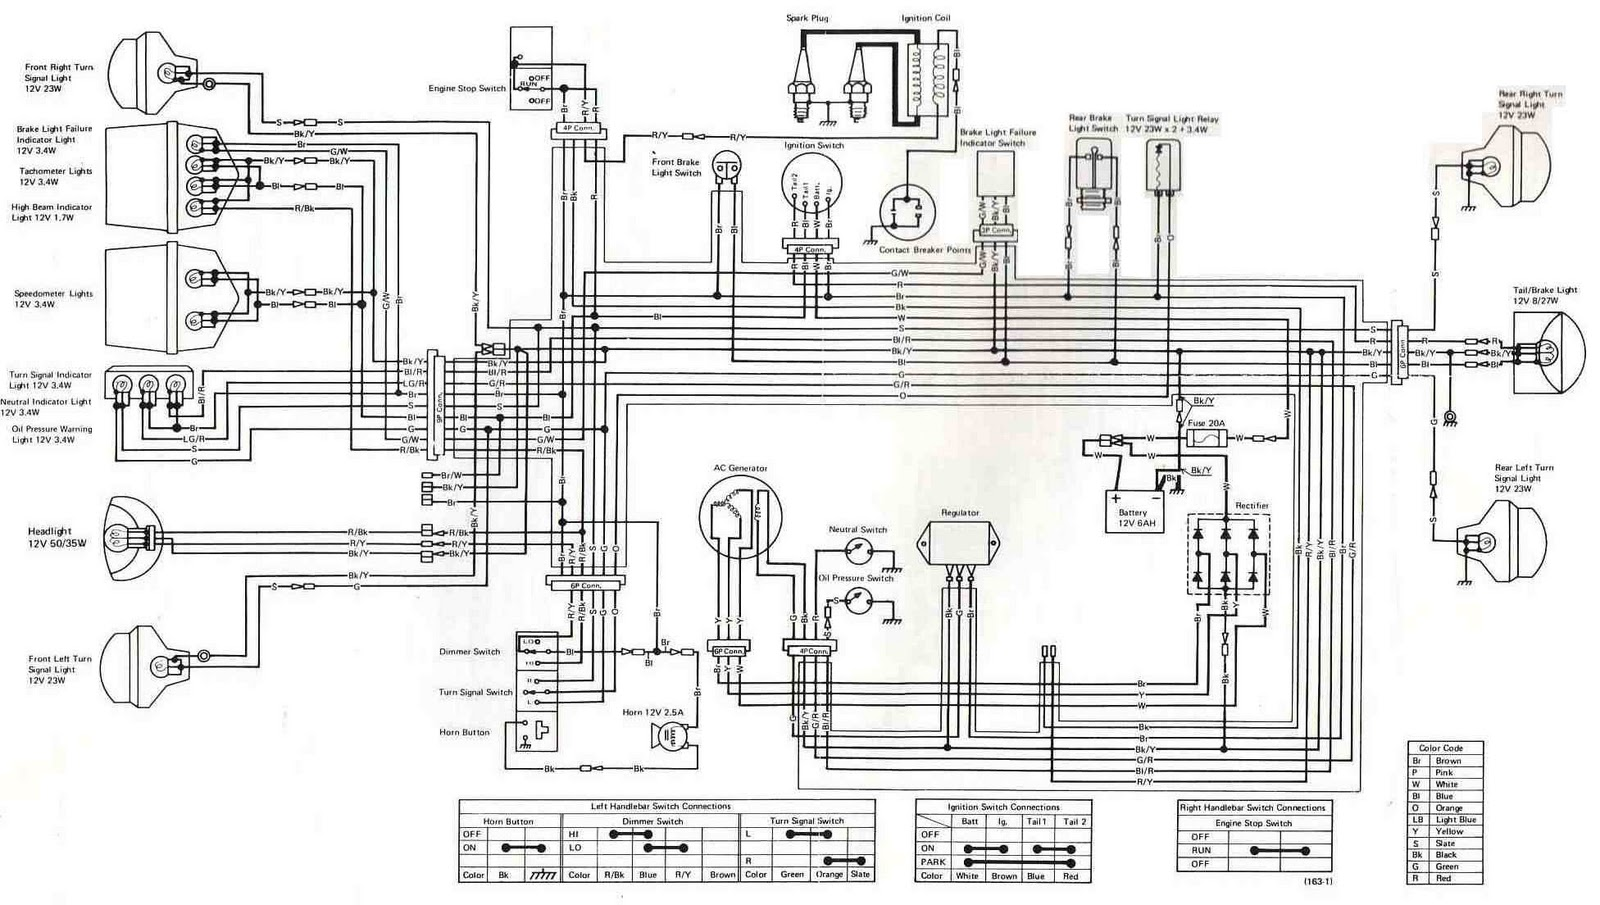 31 Kawasaki Wiring Diagram FULL Version HD Quality Wiring Diagram -  THILDIAGRAM.LABO-WEB.FRthildiagram.labo-web.fr